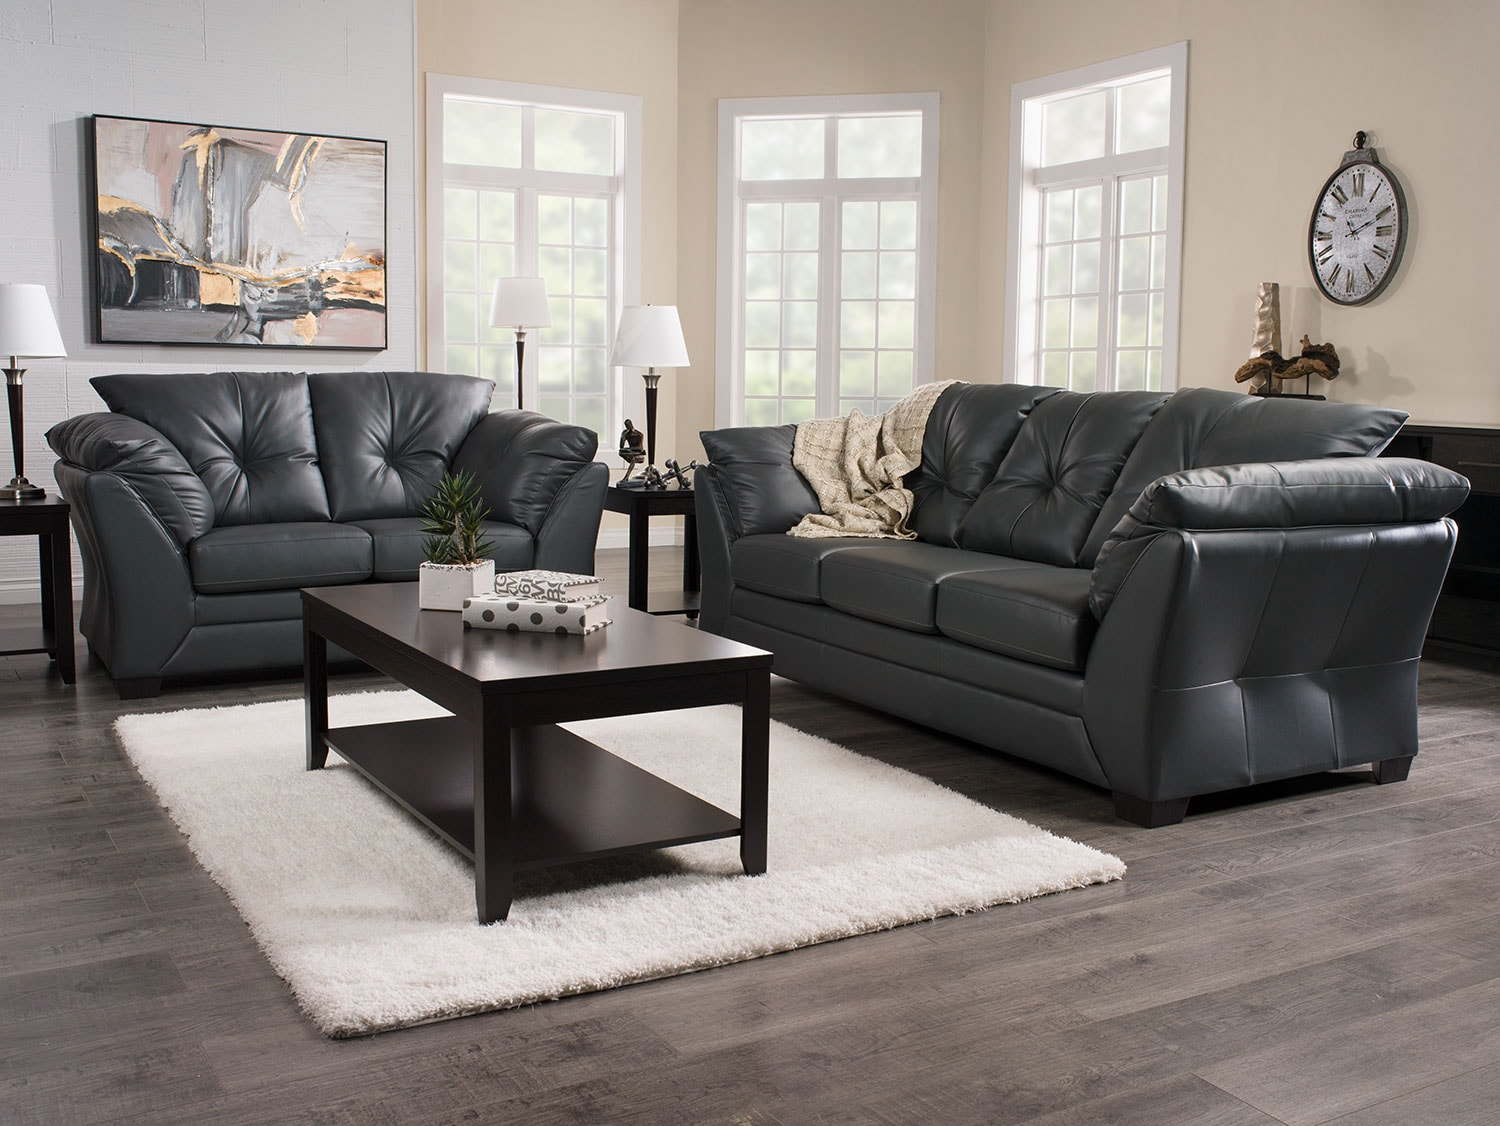 Max faux leather full size sofa bed grey the brick - What size couch for my living room ...